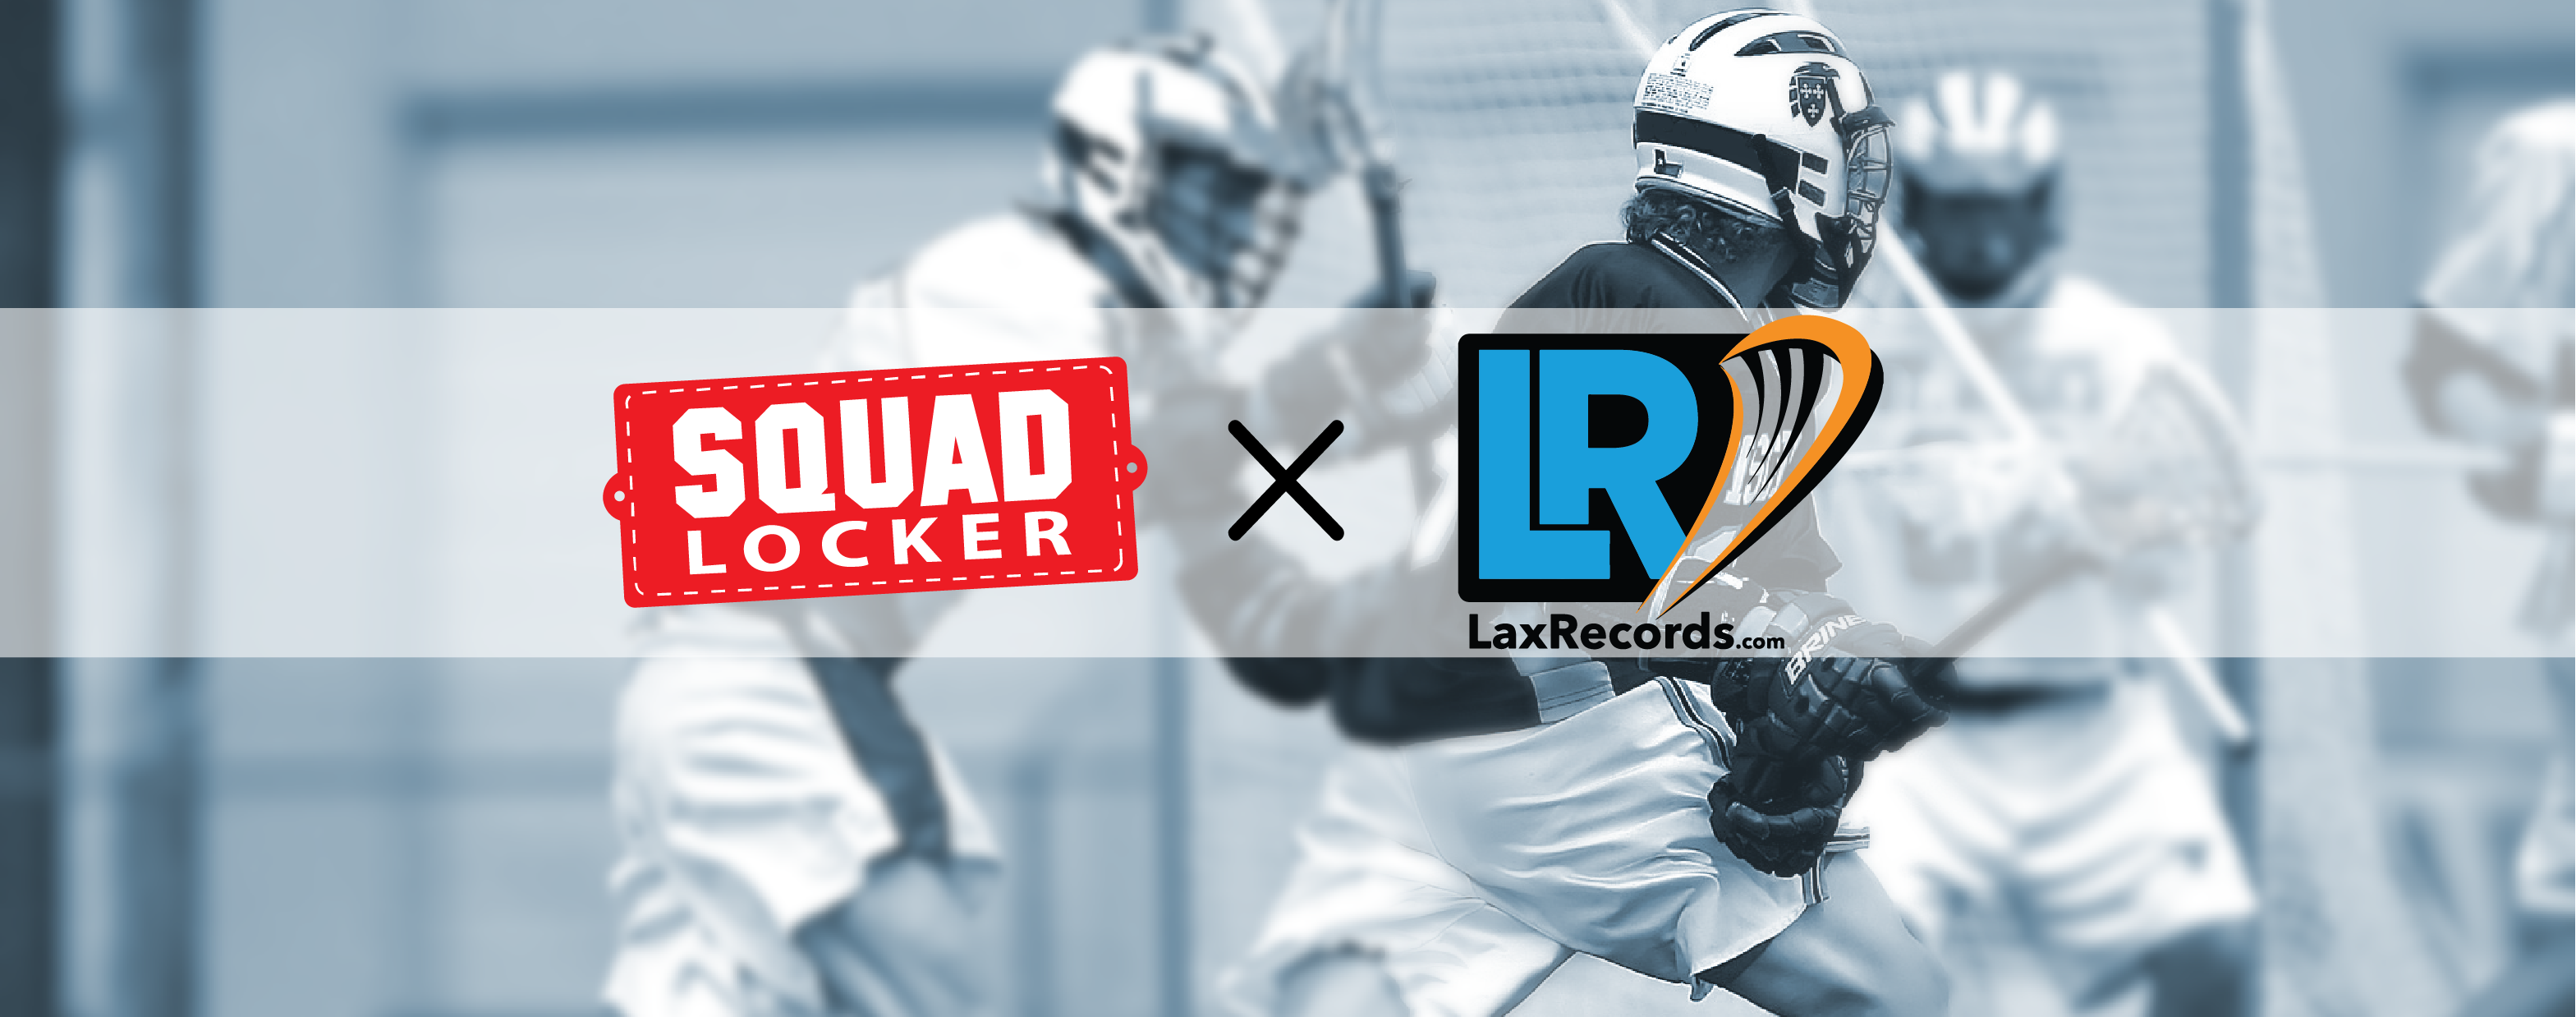 7b236a748 LaxRecords.com now features SquadLocker's one-stop shop for team spirit wear  and gear